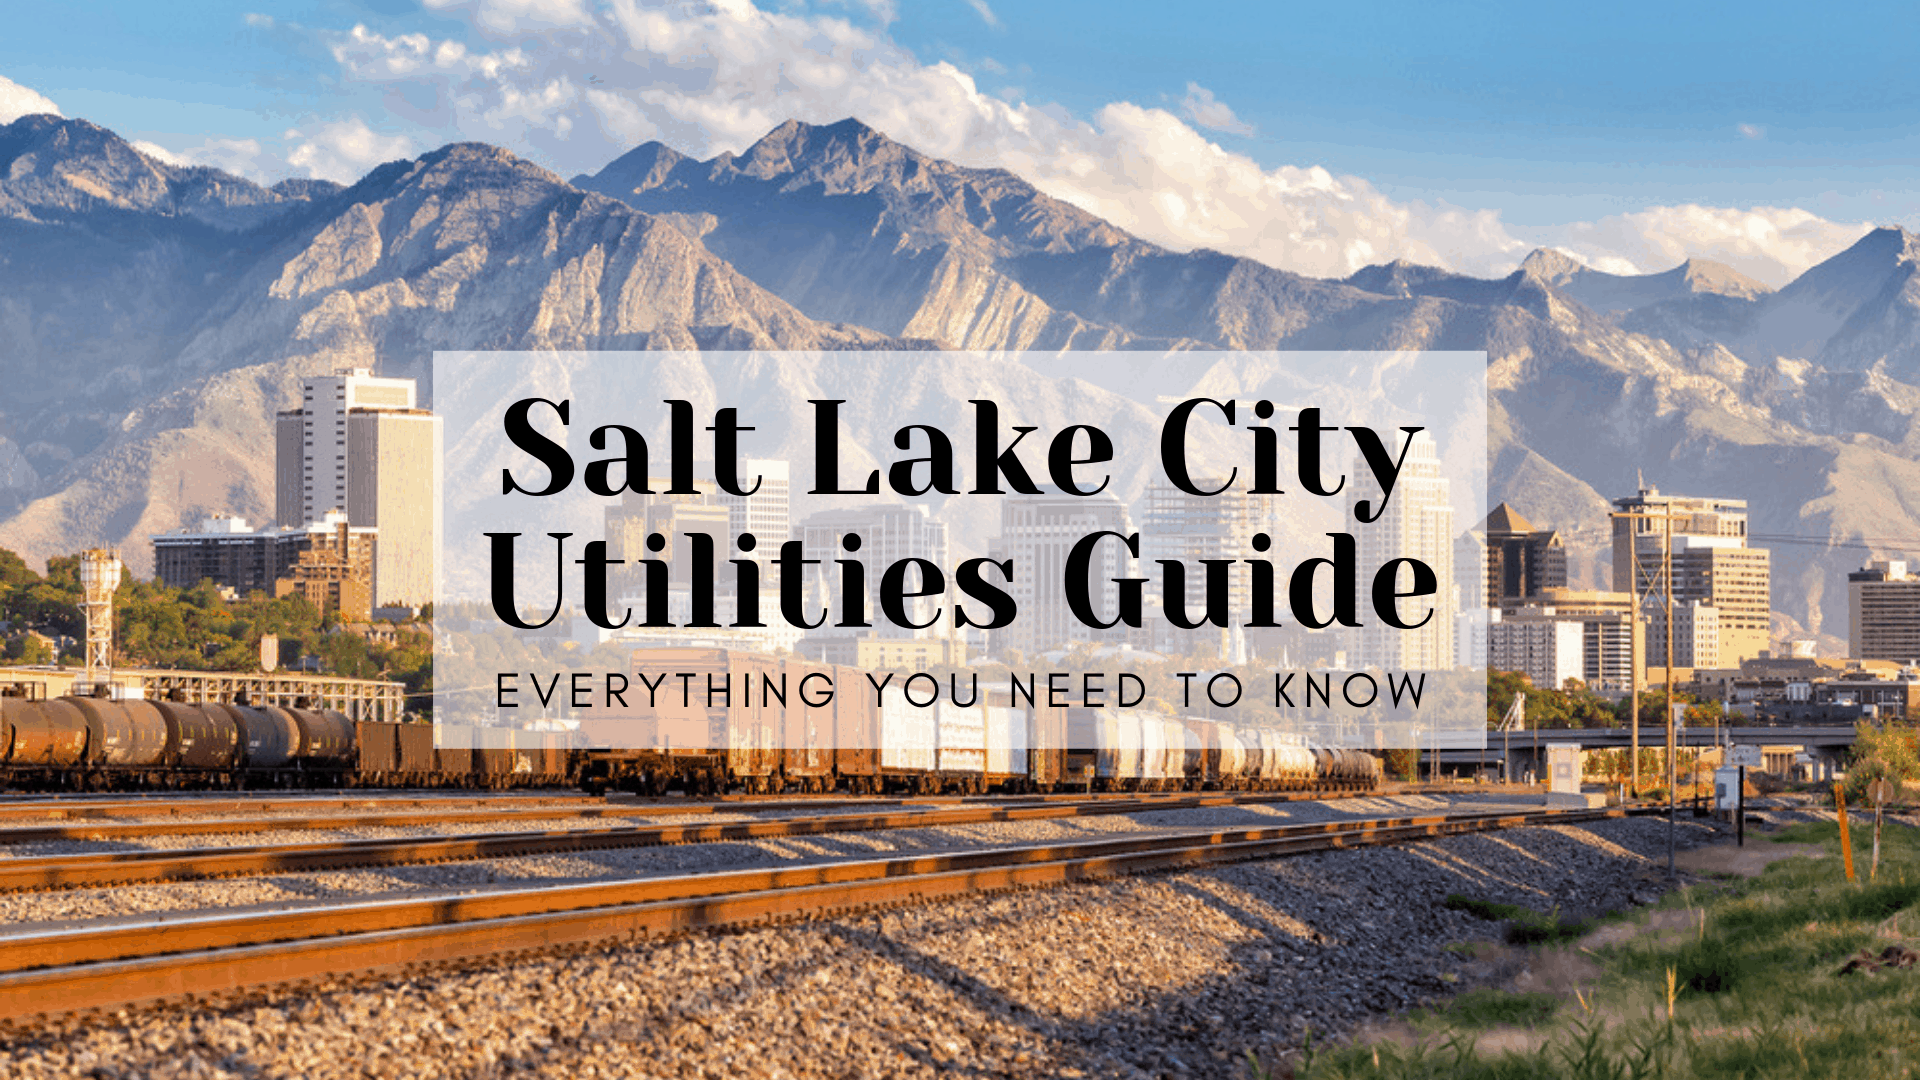 Salt Lake City Utilities Guide - Everything You Need to Know